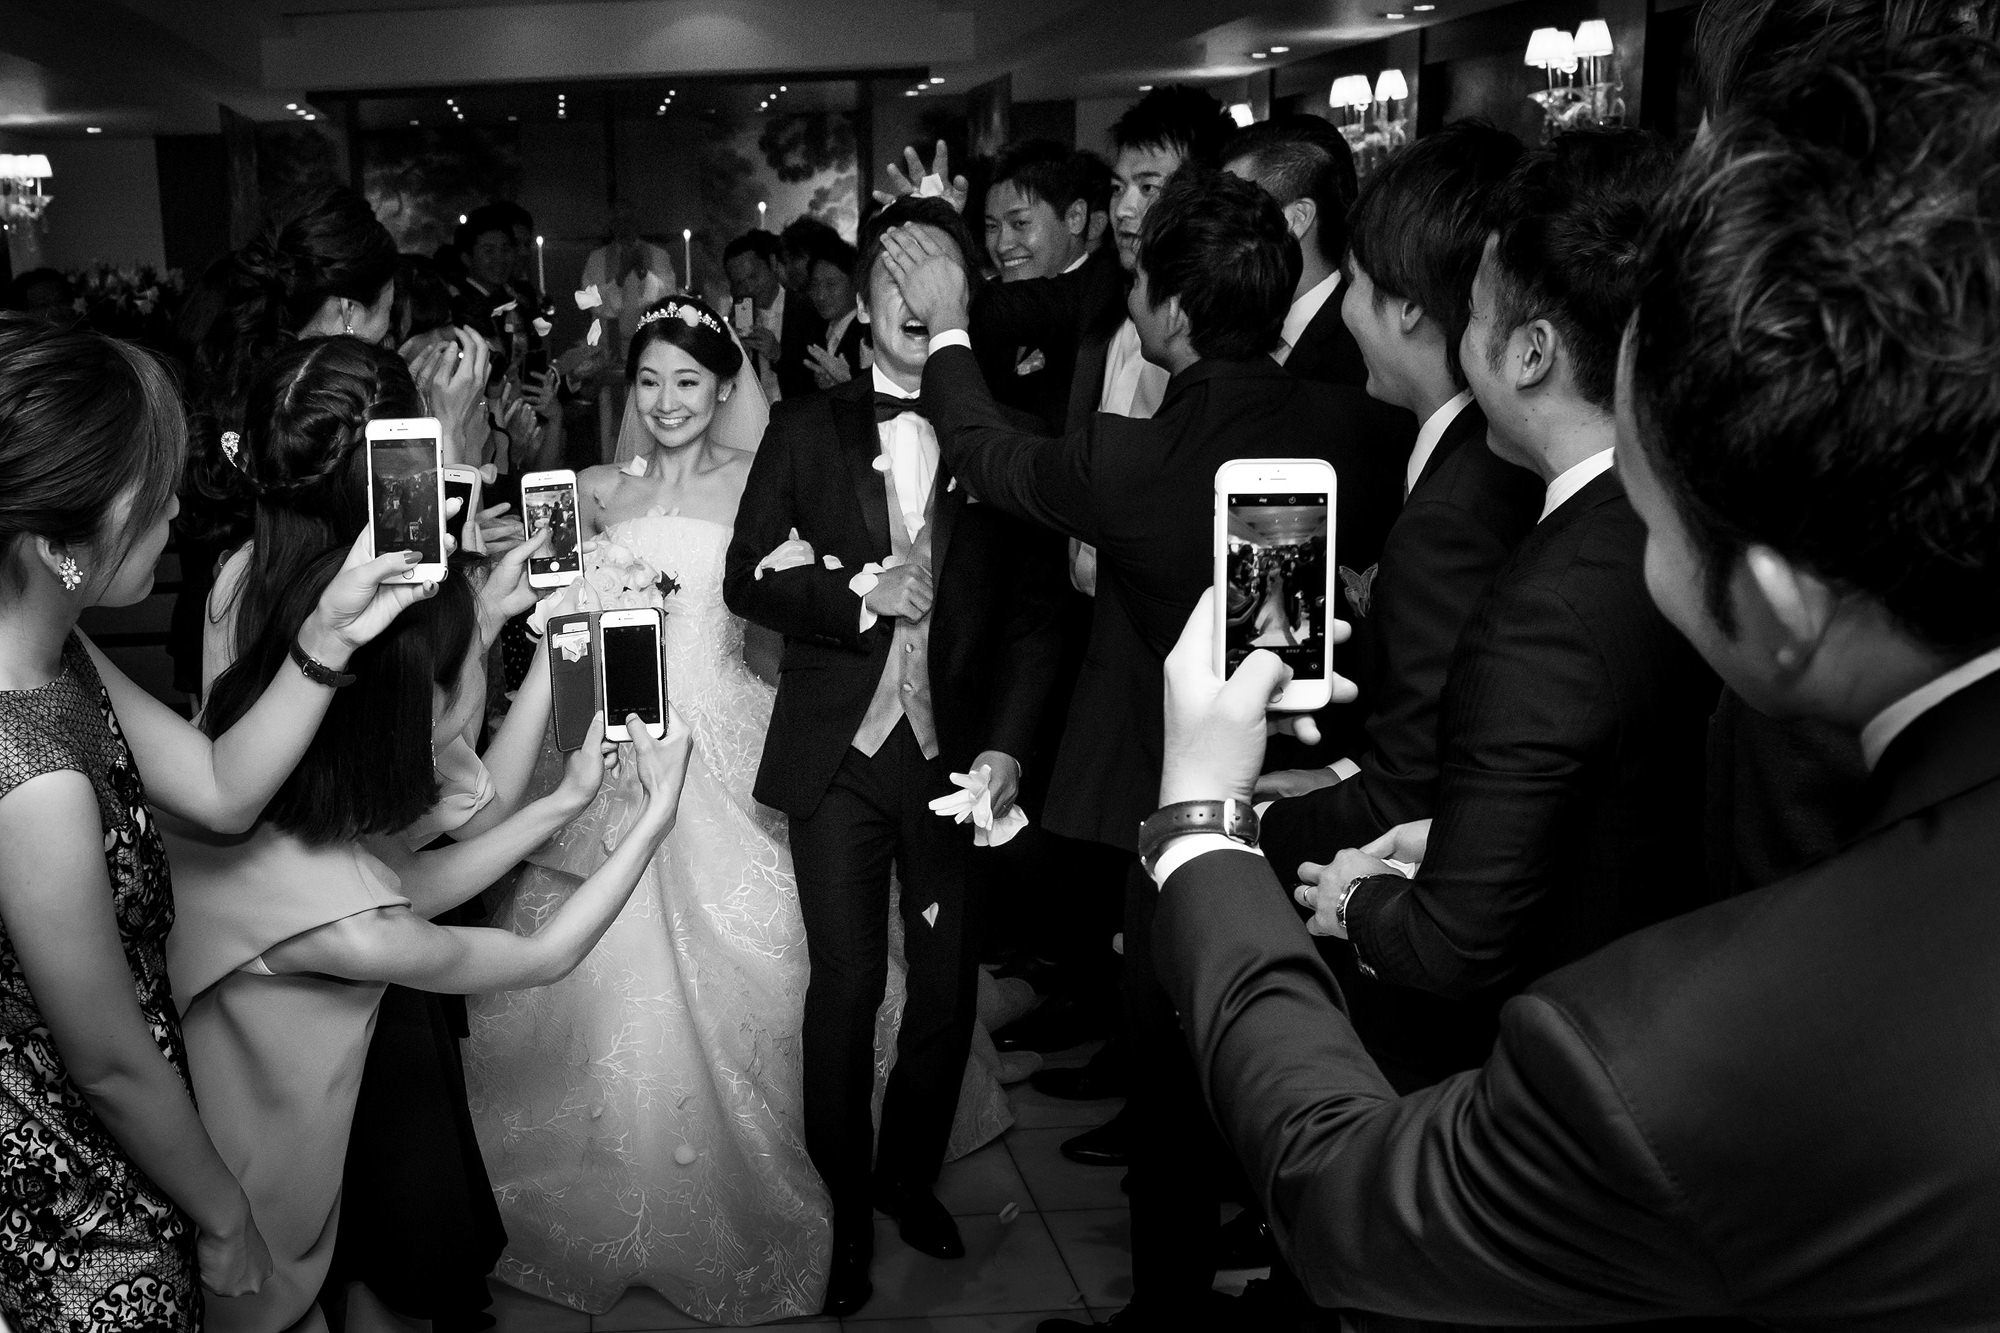 Guests rush to take photos of just married couple - photo by 37 Frames - Japan